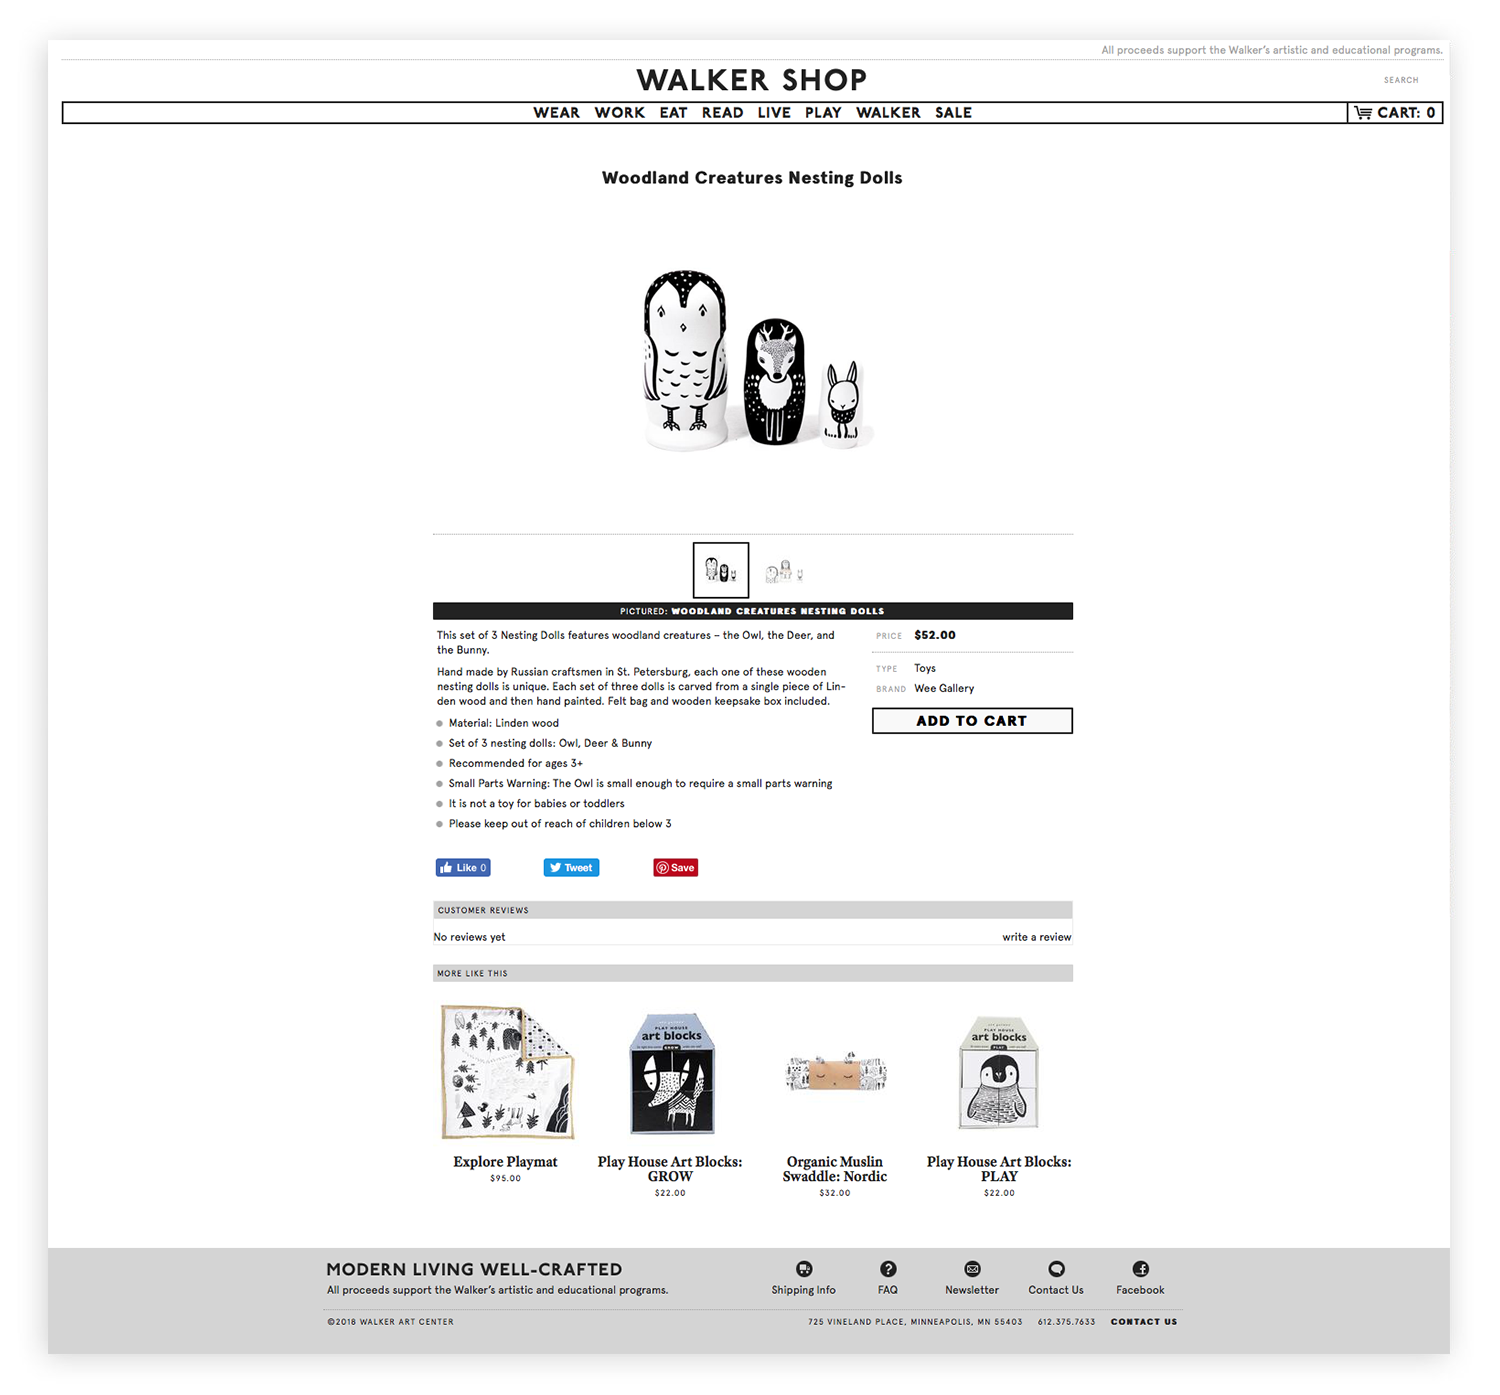 walker-shop-site-product-page-old.png